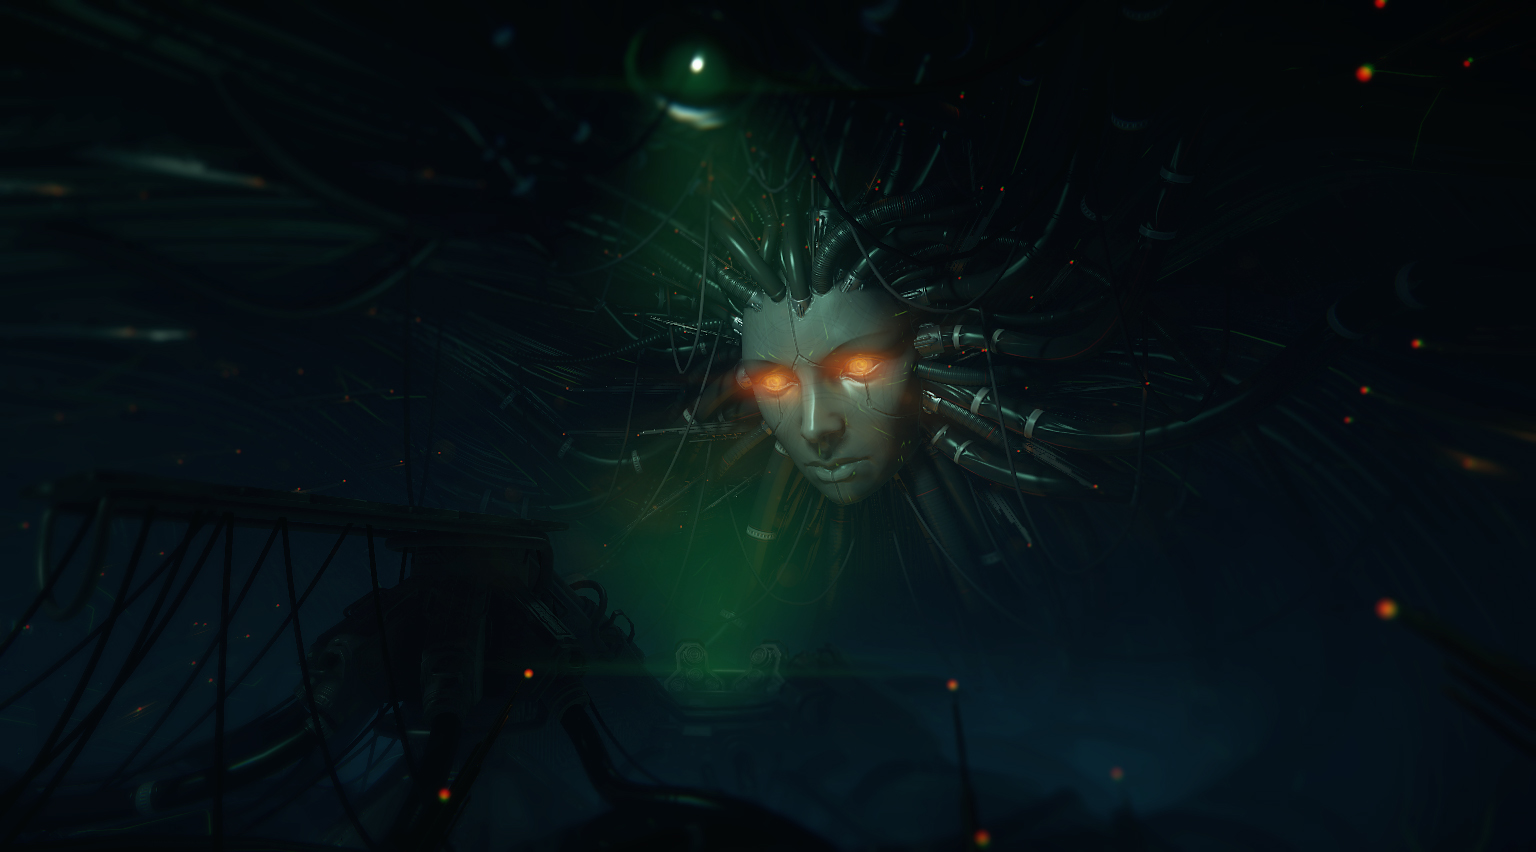 System Shock 2 modder reveals screens from gorgeous cutscene